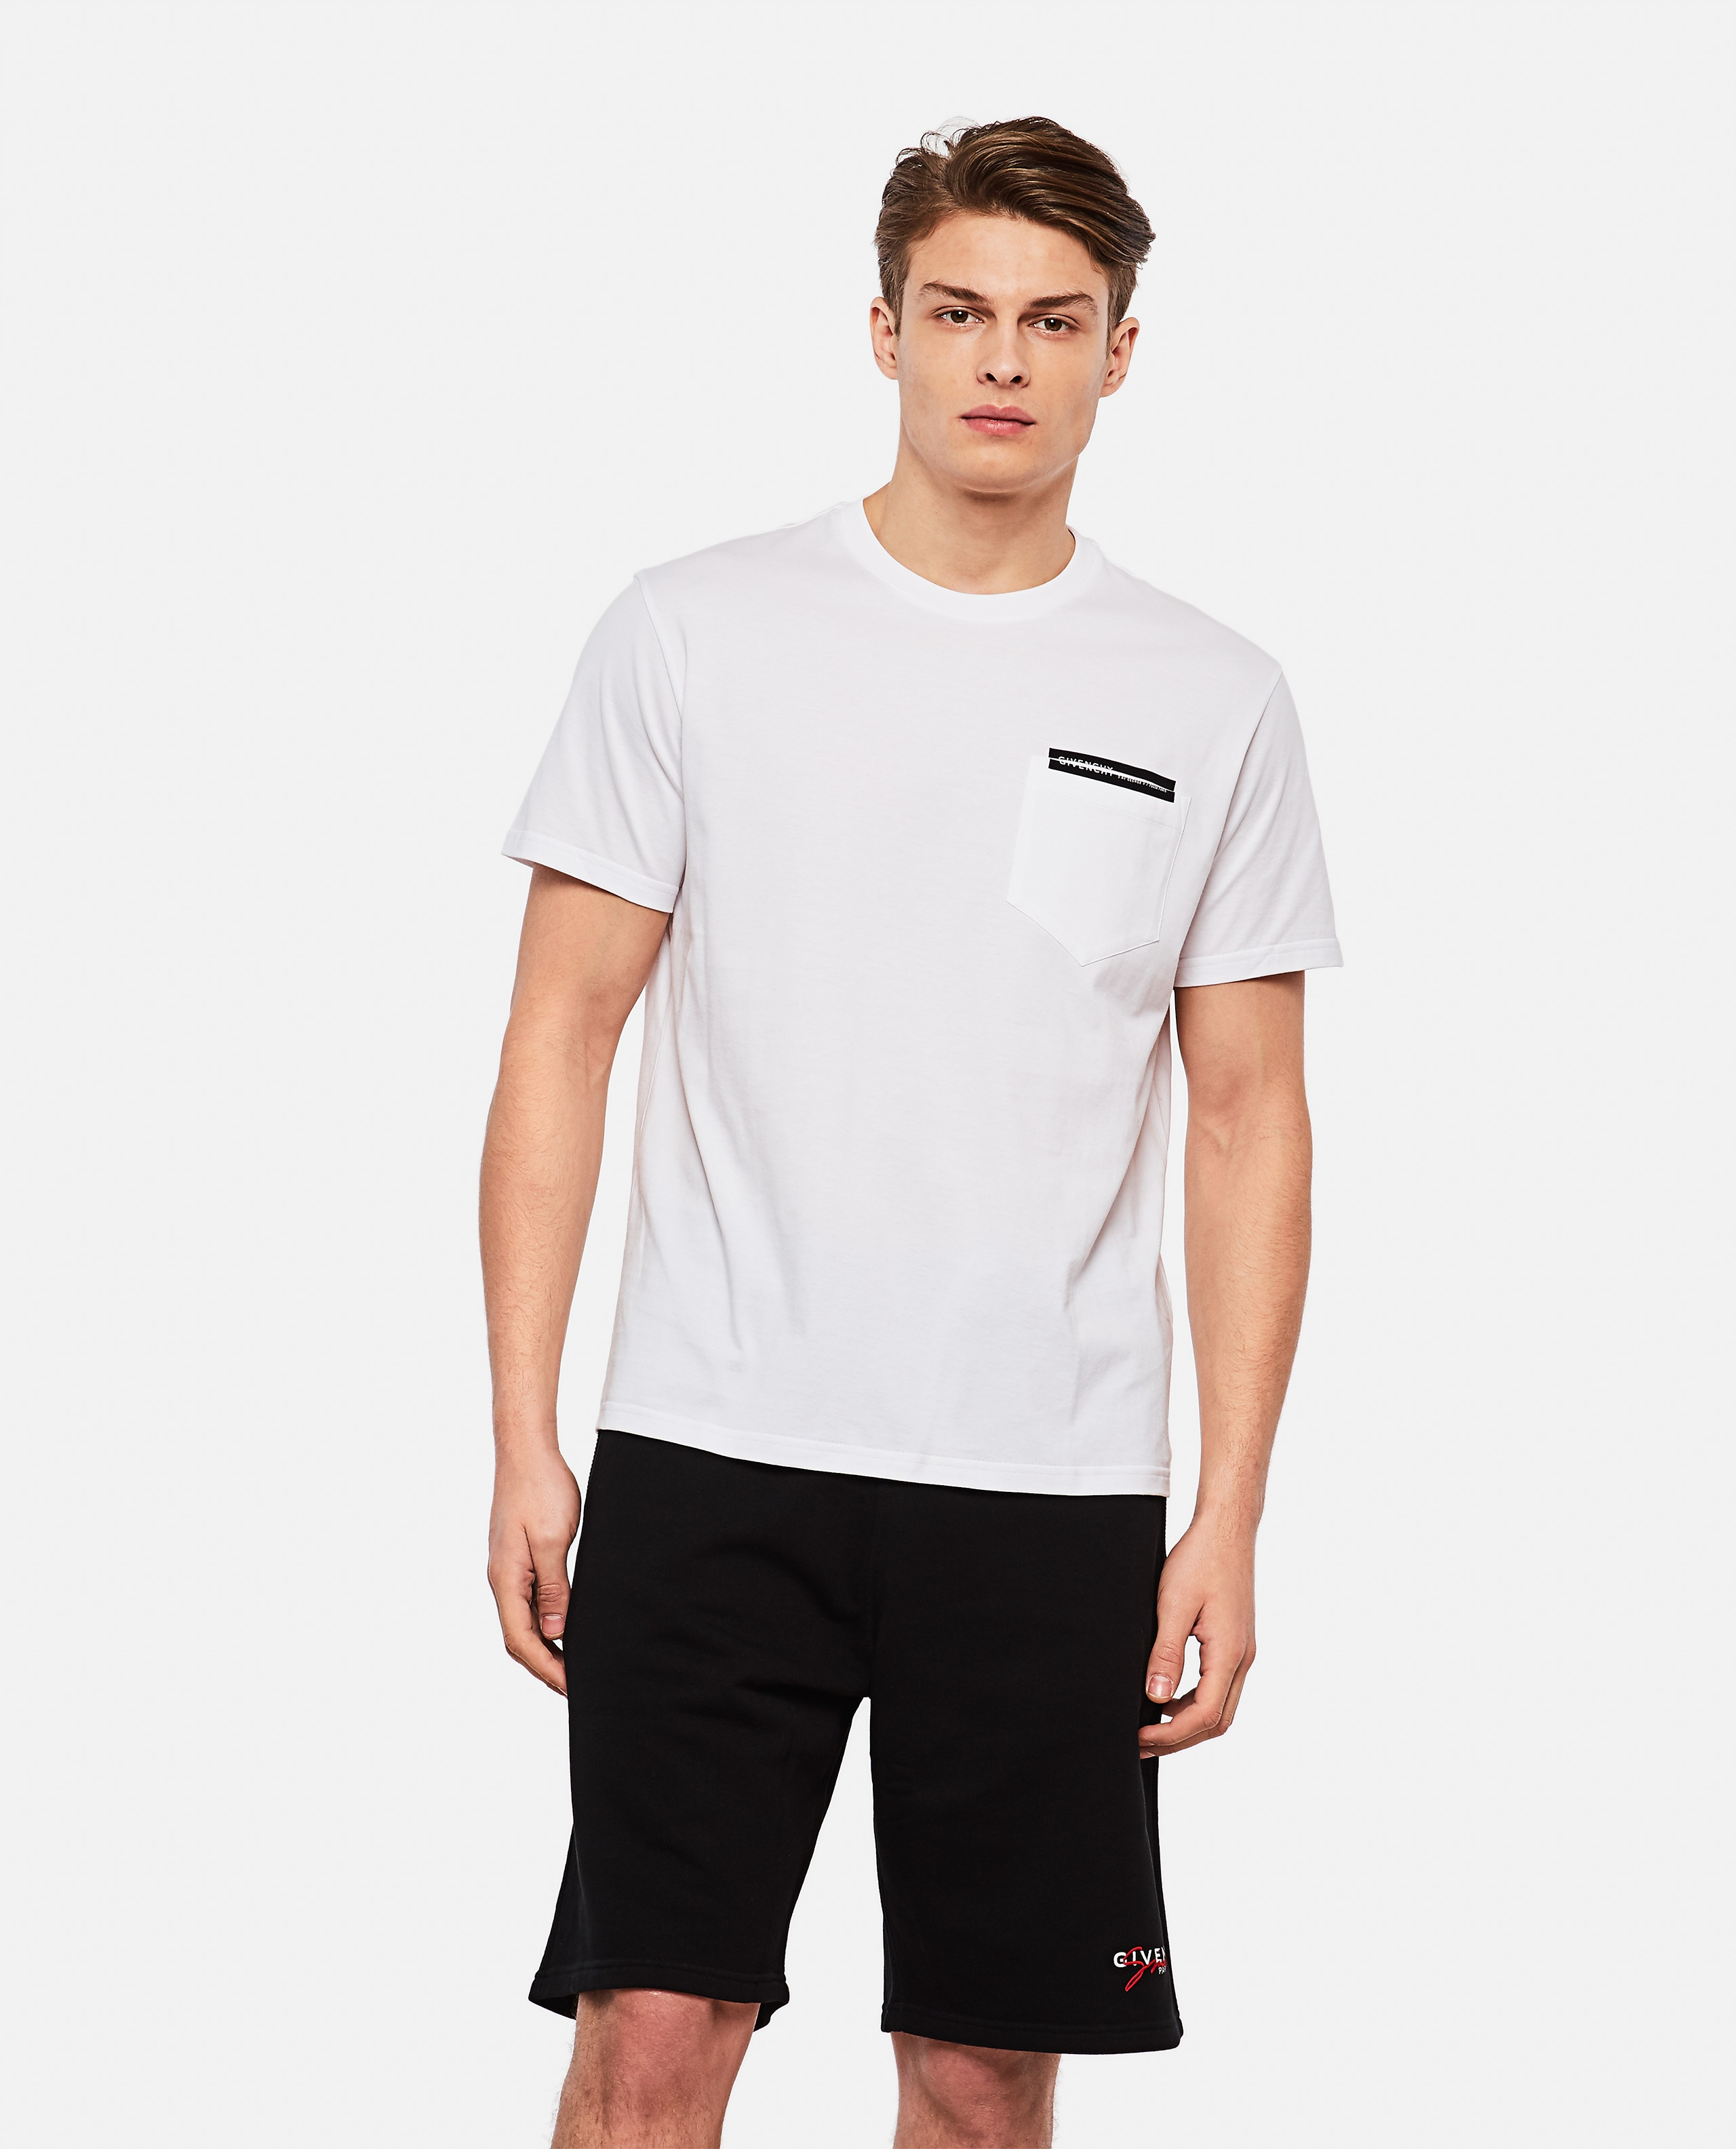 T-shirt with logo Men Givenchy 000226460033485 1